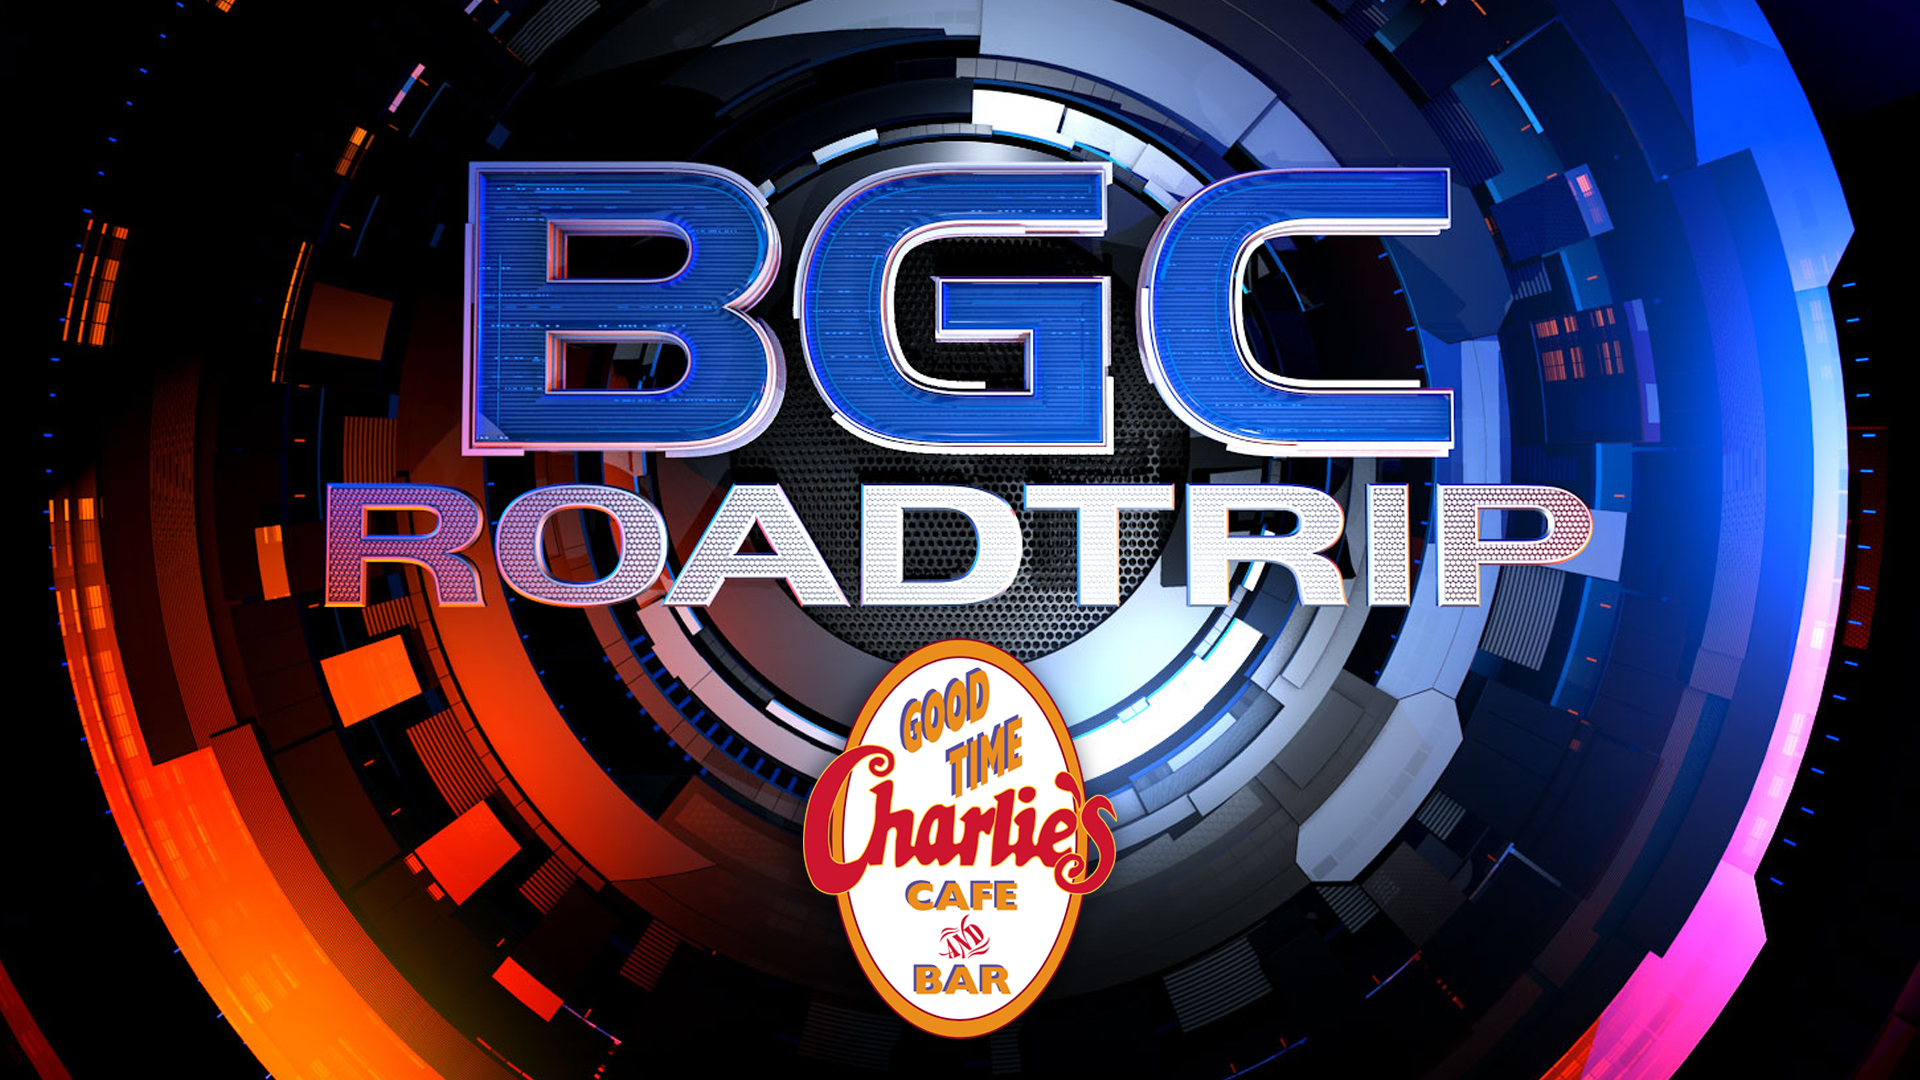 BGC Roadtrip